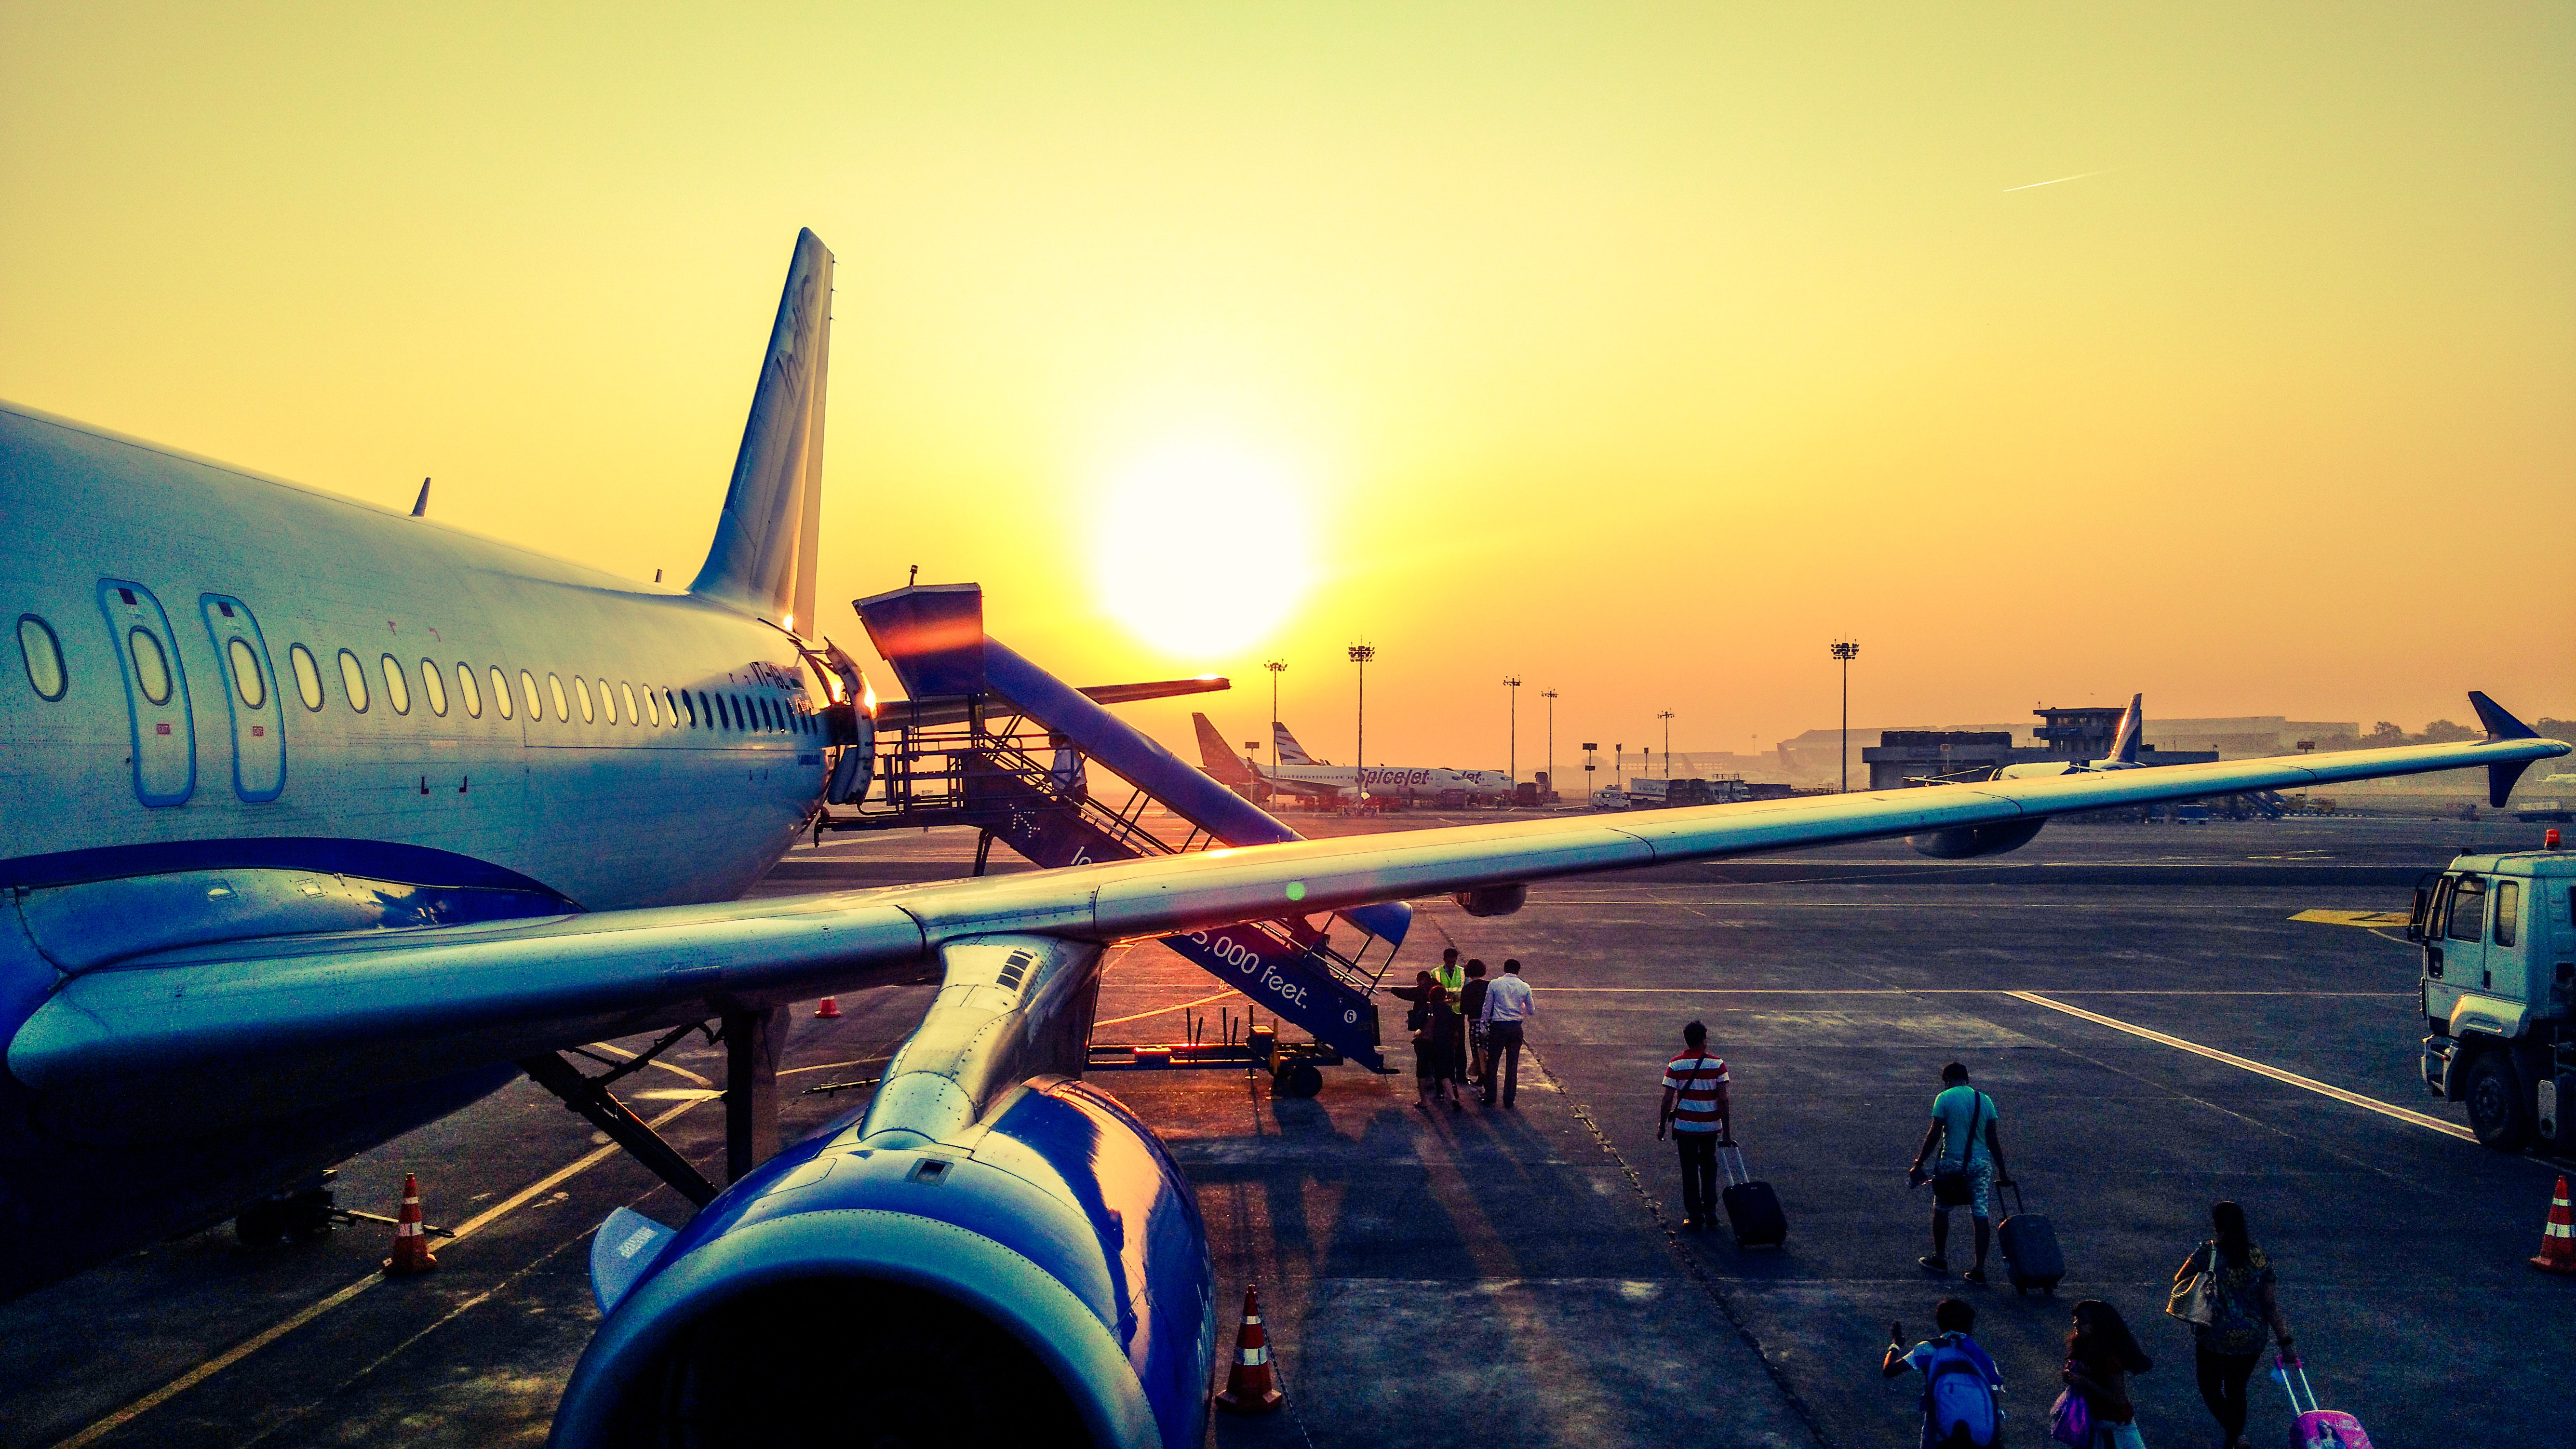 Top 6 Benefits Of Air Freight The Greencarrier Blog